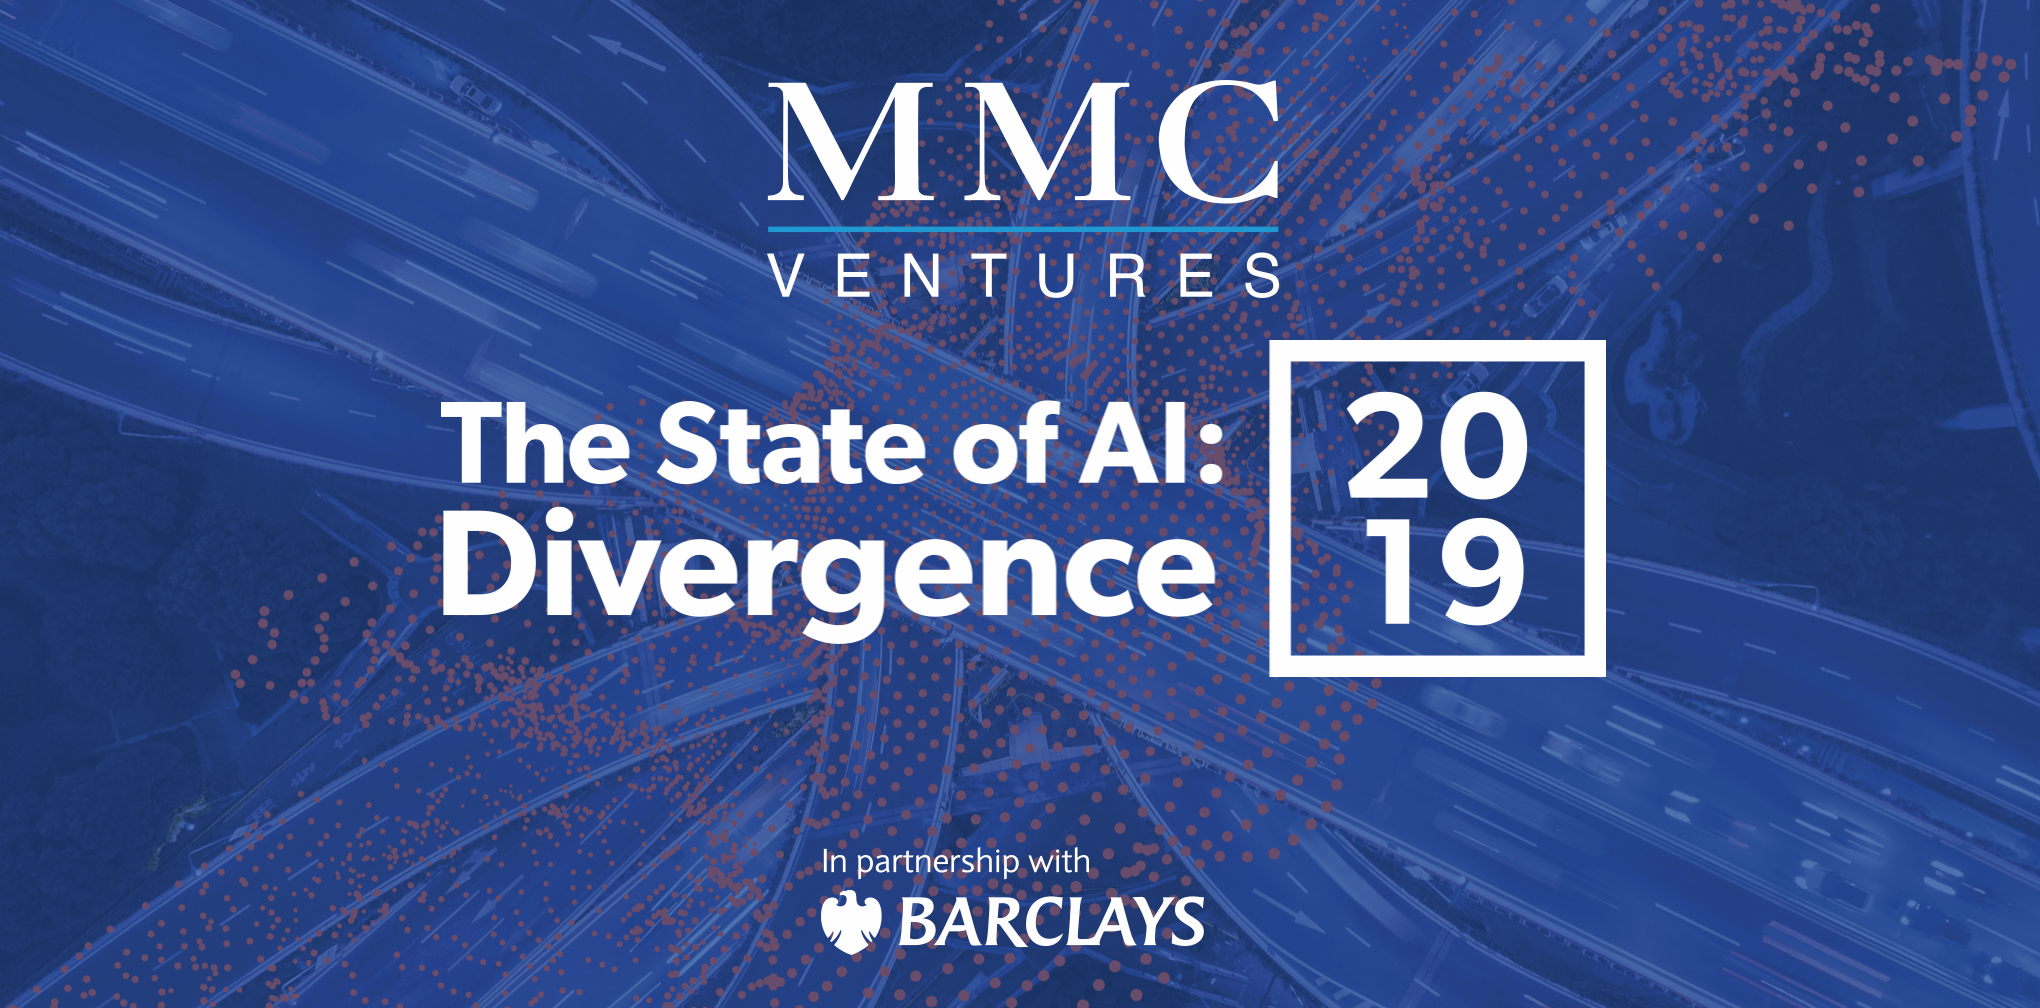 Introducing The State of AI 2019: Divergence - MMC writes